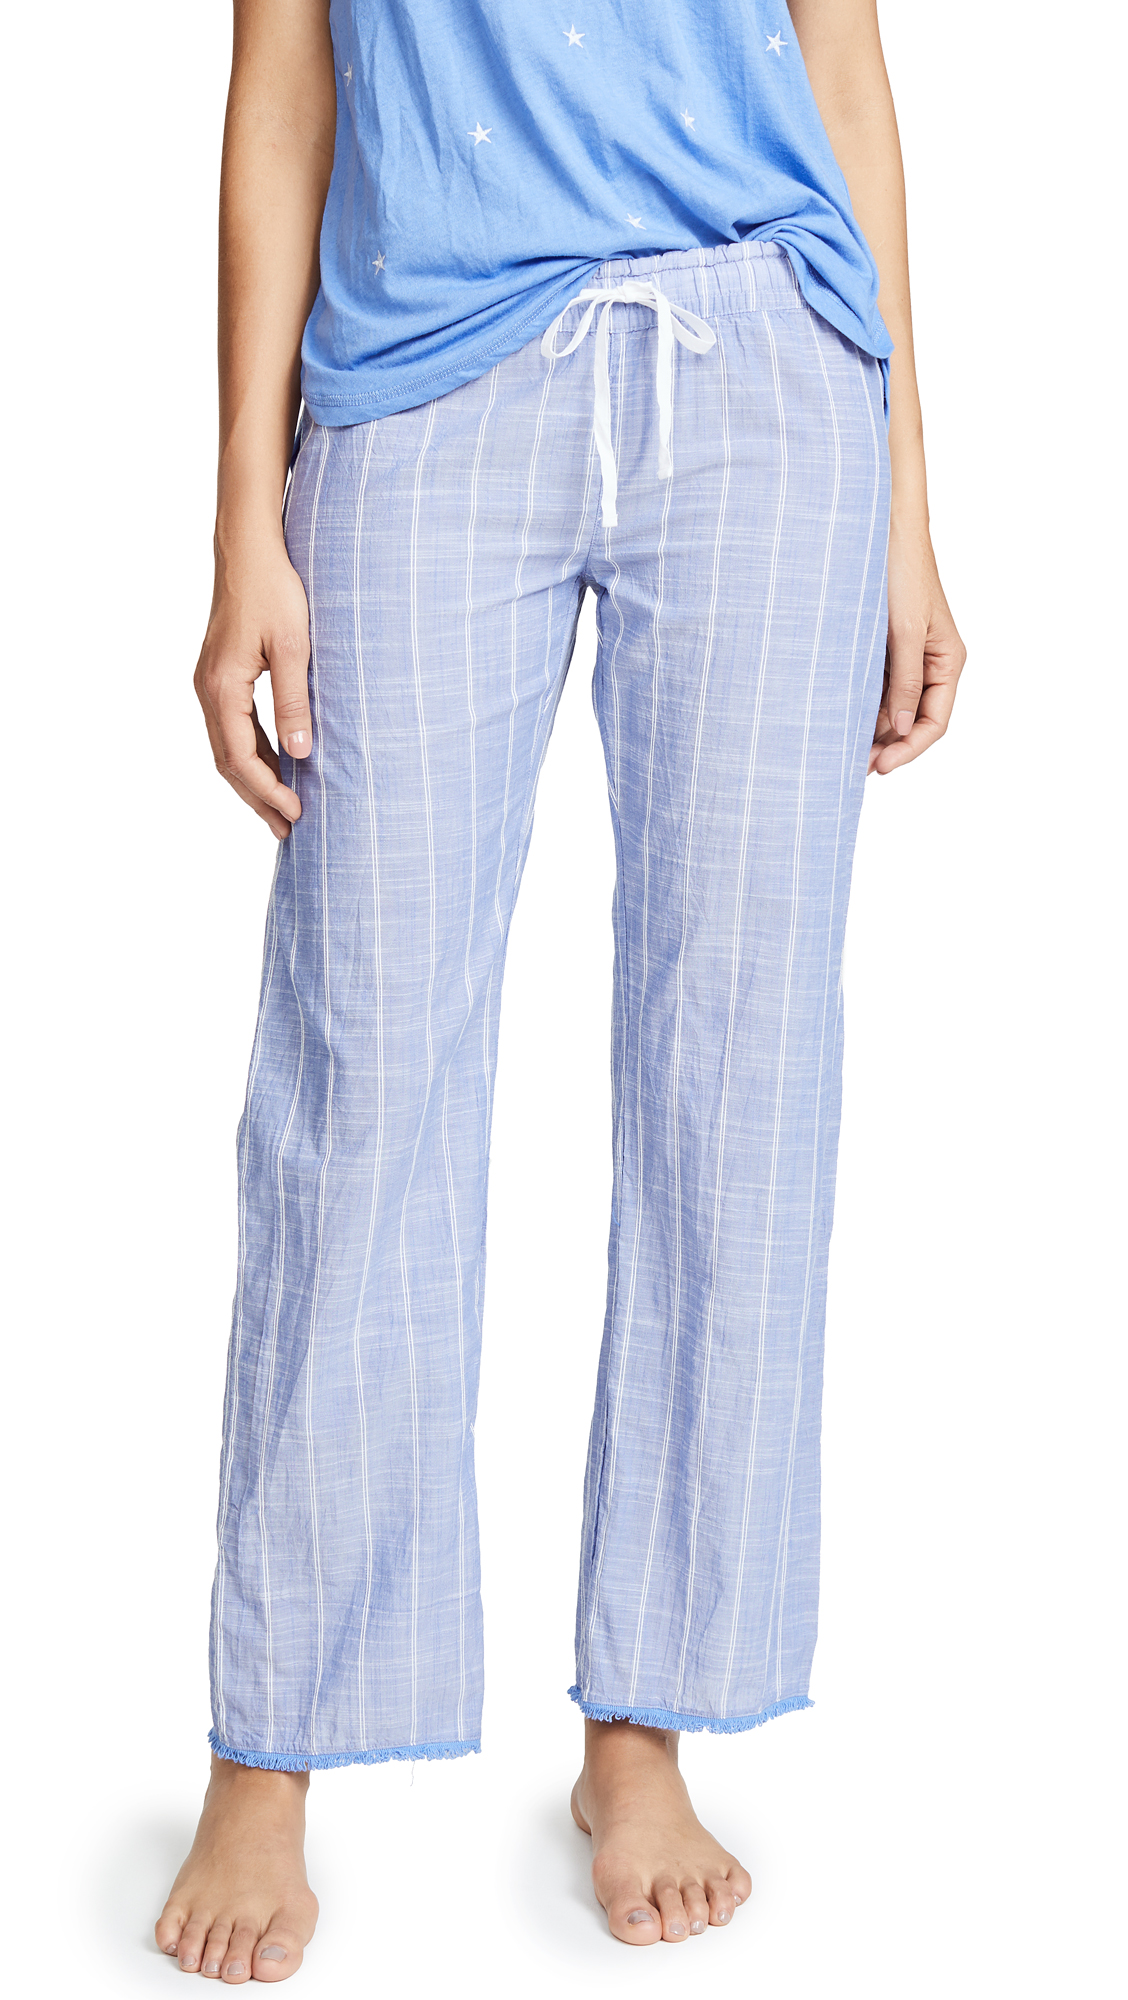 Pj Salvage FEELIN' BLUE PJ PANTS